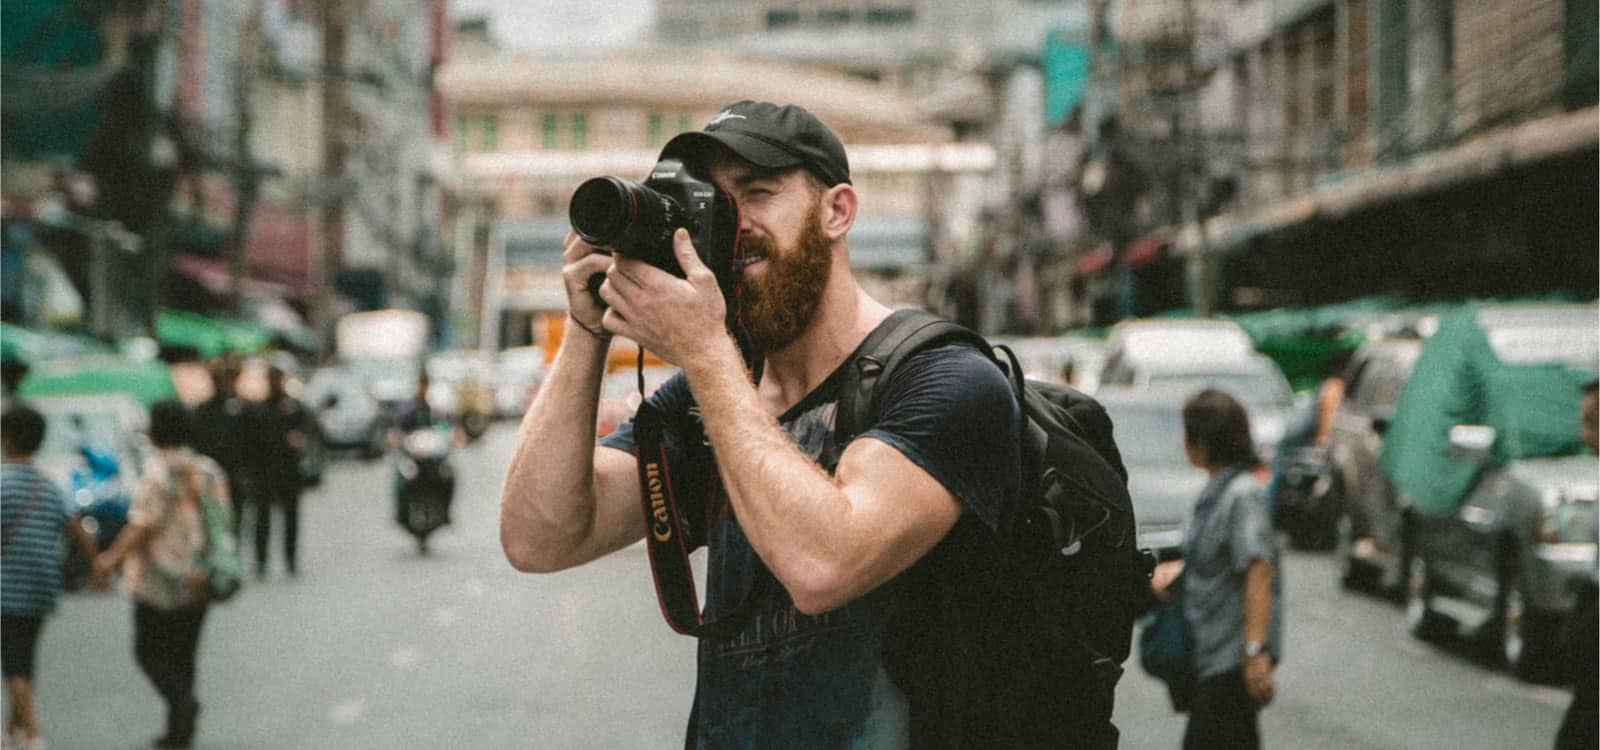 How to Start a Photography Business - Shooting